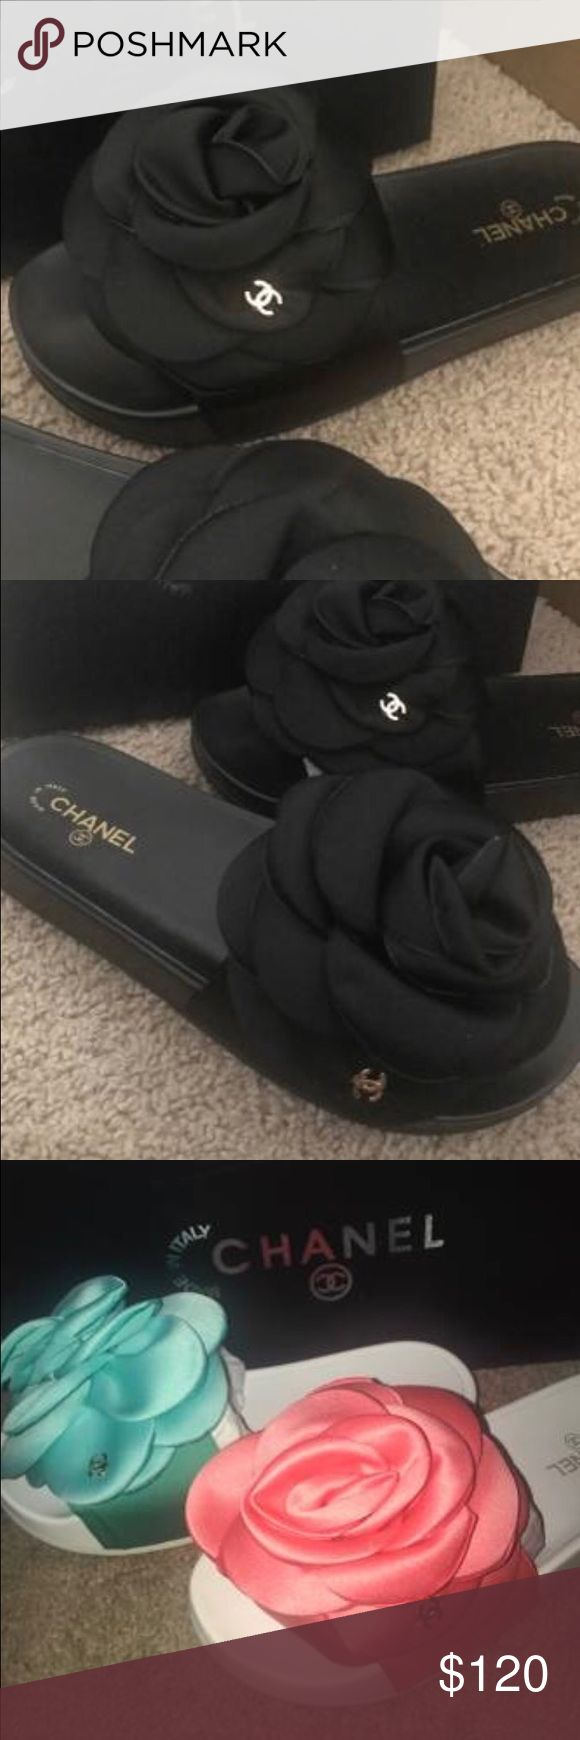 25 Best Ideas About Chanel Slippers On Pinterest Chanel